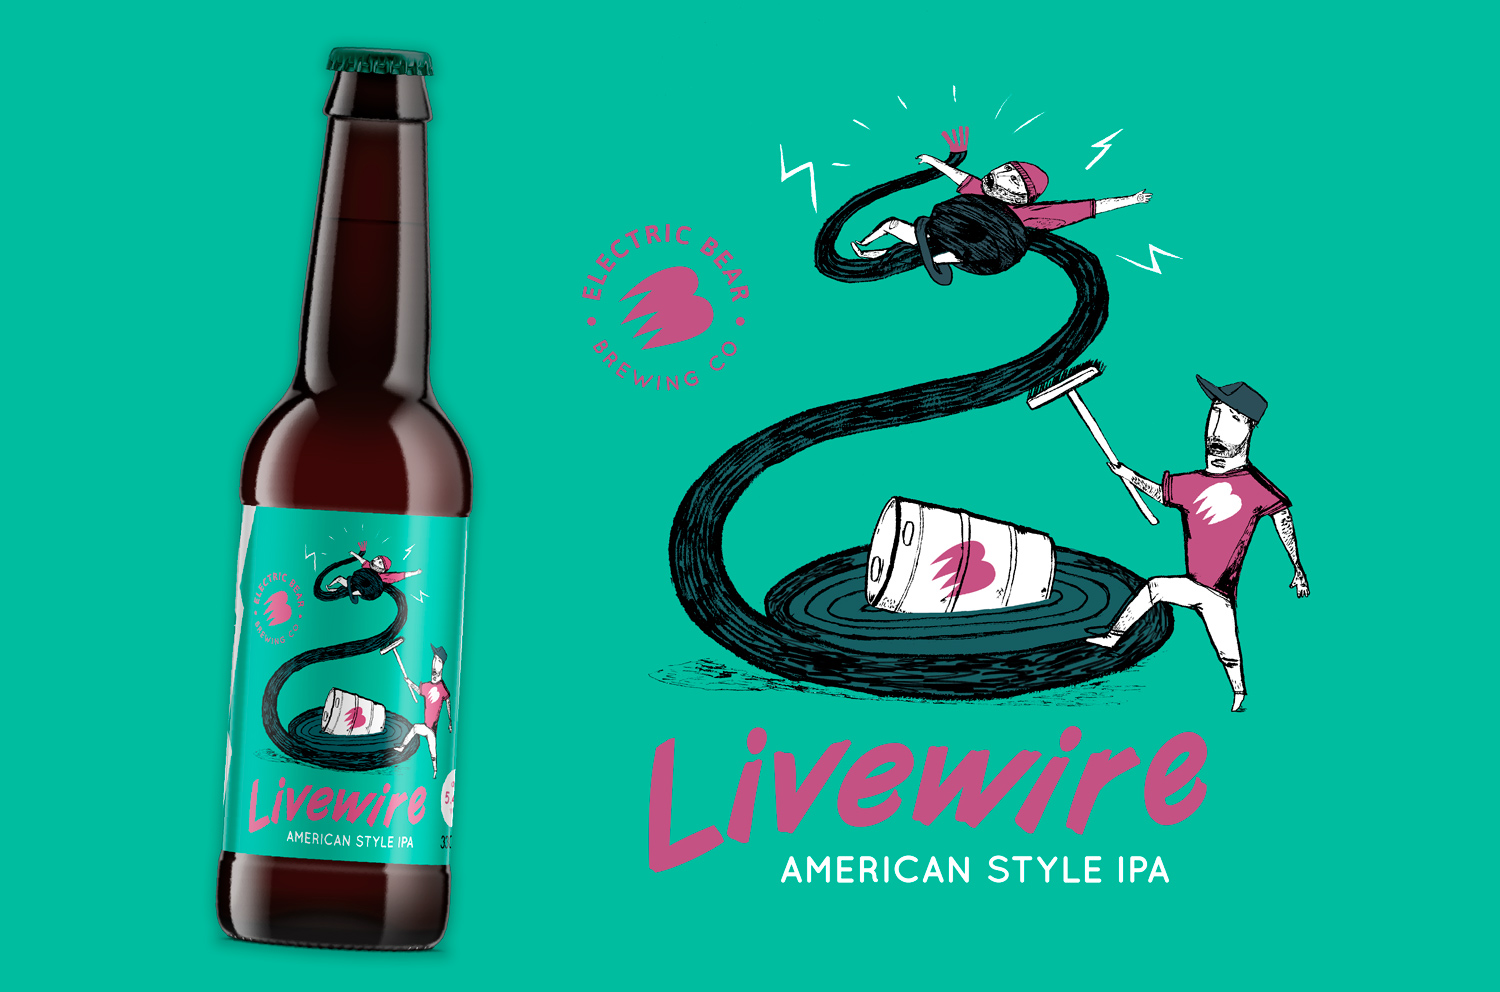 Electric Bear Brewing co Beer label illustration Livewire American IPA Electric Bear Brewing Co